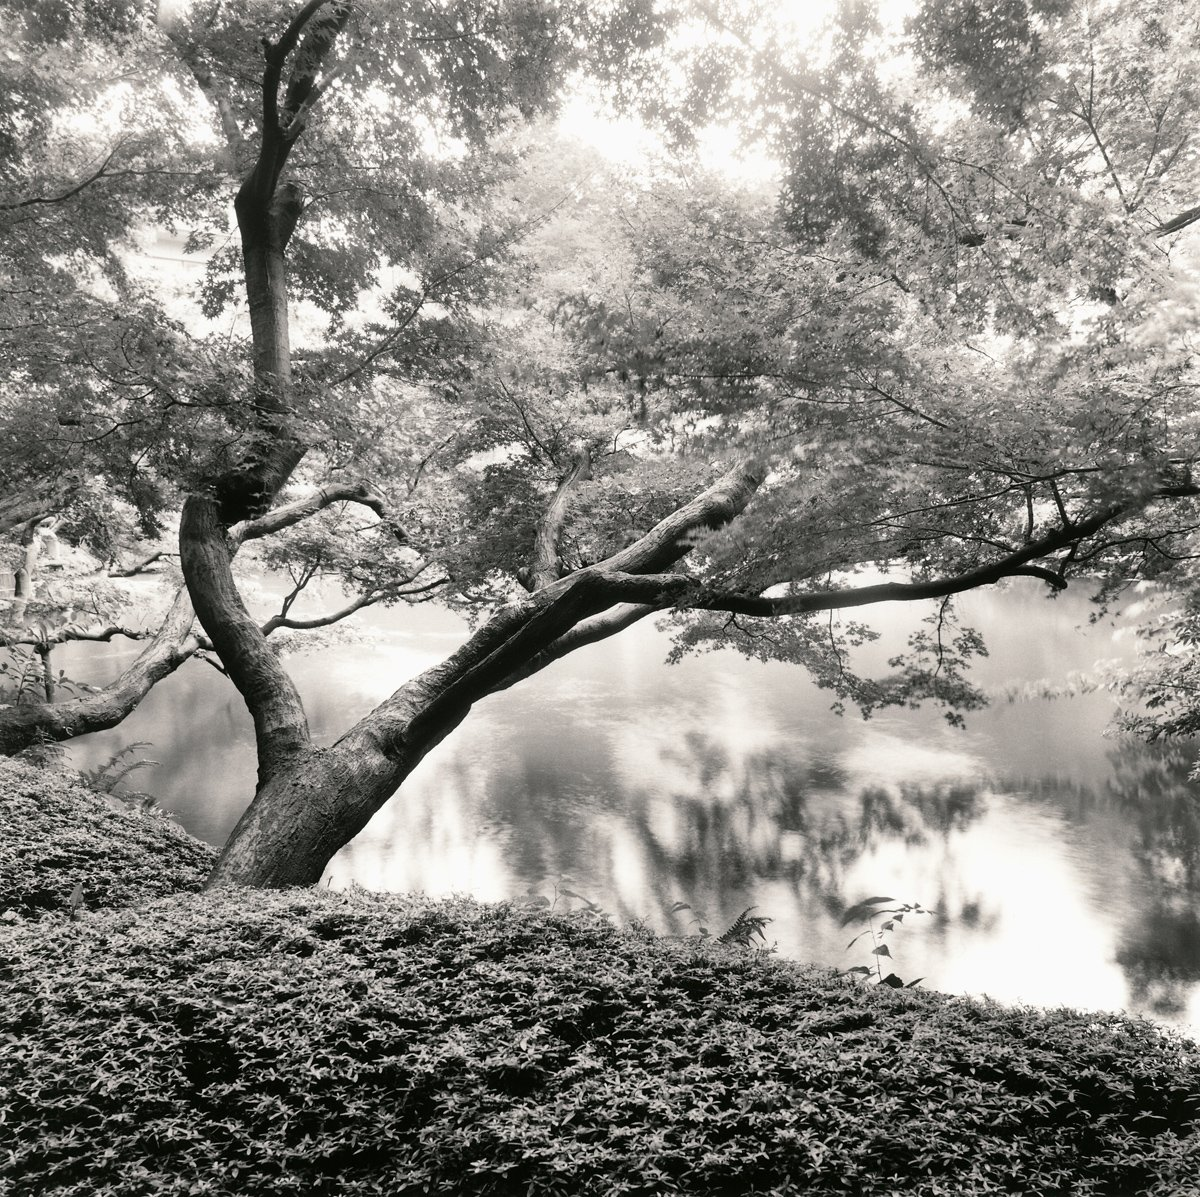 Tree and Pond, Tokyo, Japan 2001